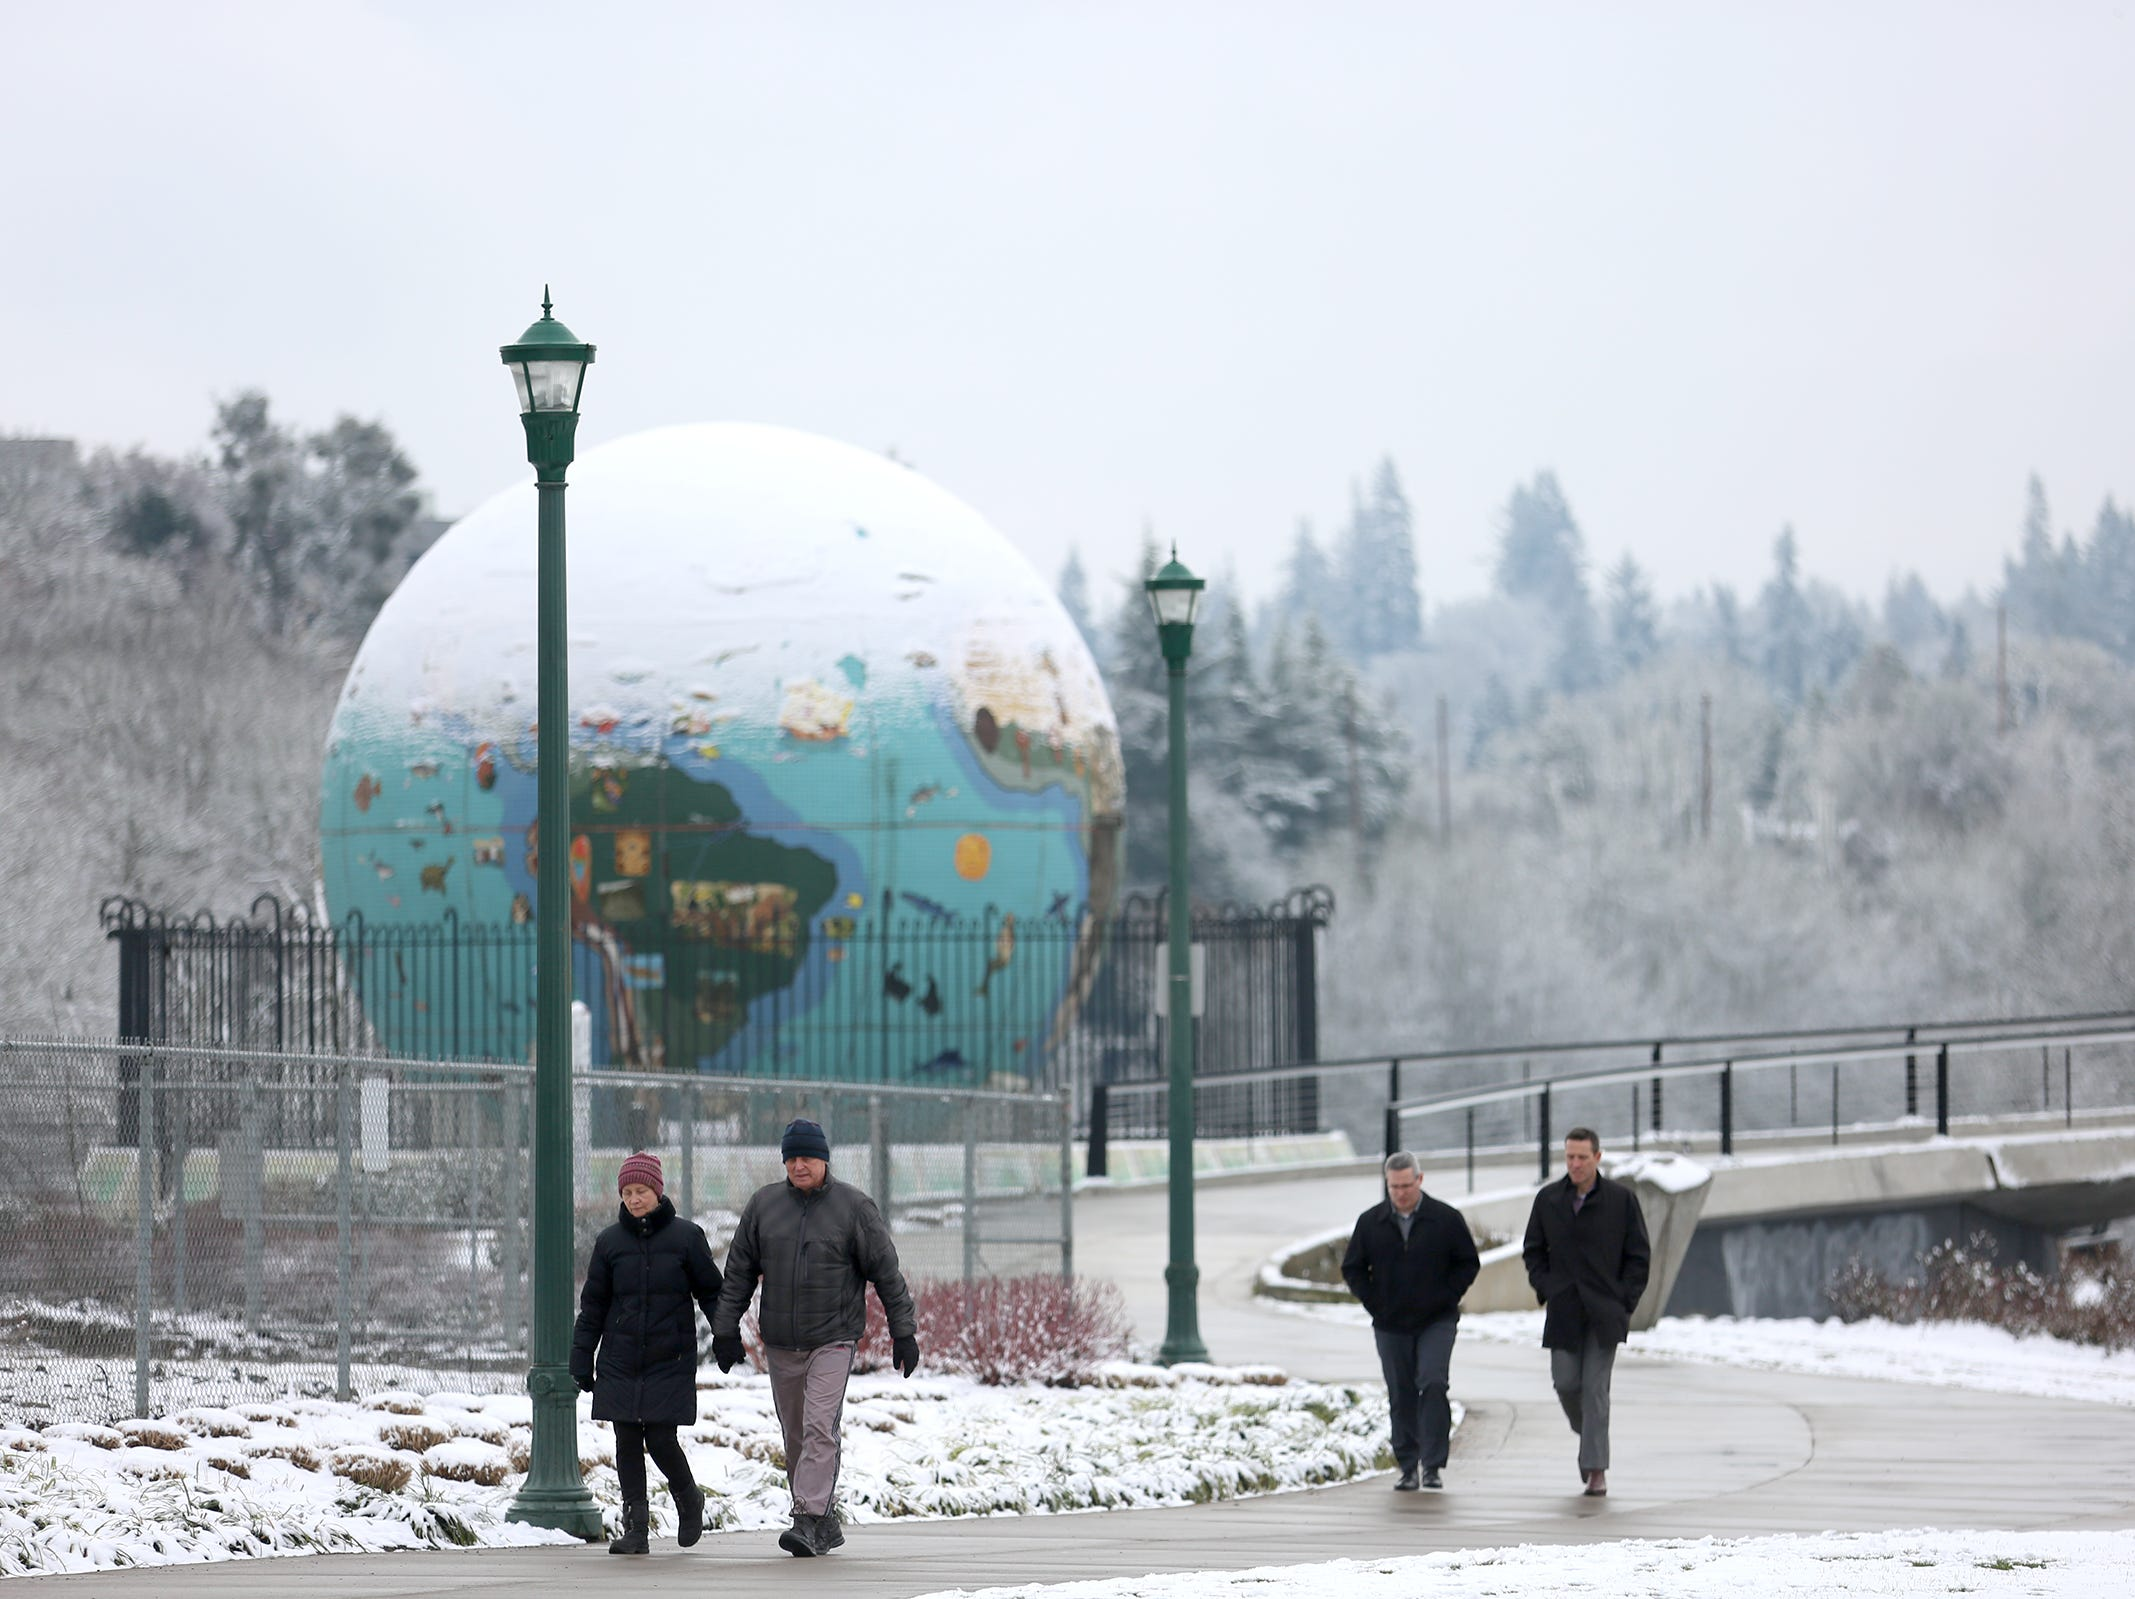 People go for a walk at Riverfront Park in Salem after it snowed on Tuesday, Feb. 5, 2019.